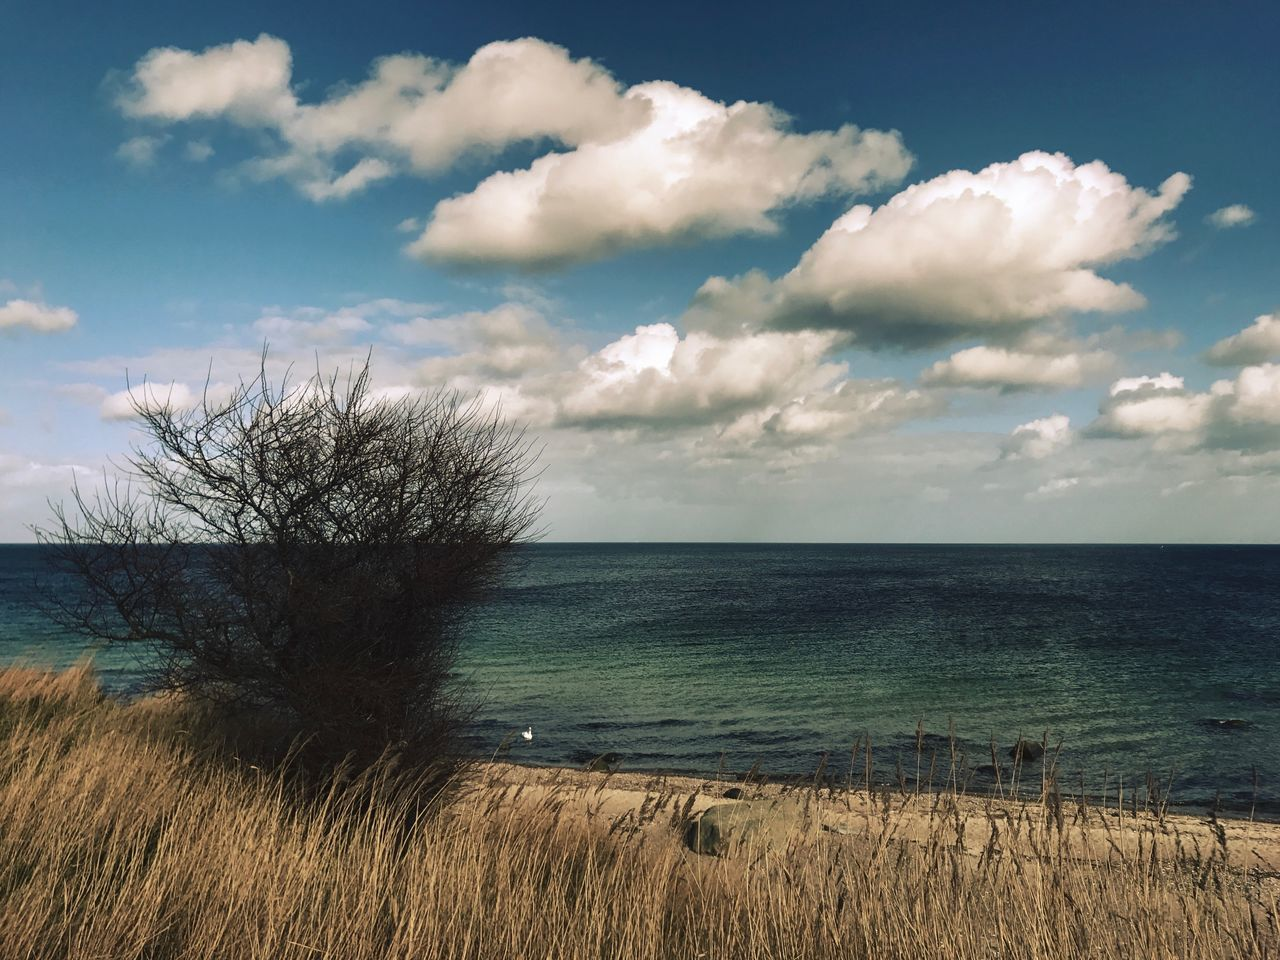 Beauty In Nature Cloud - Sky Day Grass Horizon Over Water Landscape Nature No People Outdoors Scenics Sea Sky Tranquil Scene Tranquility Tree Water